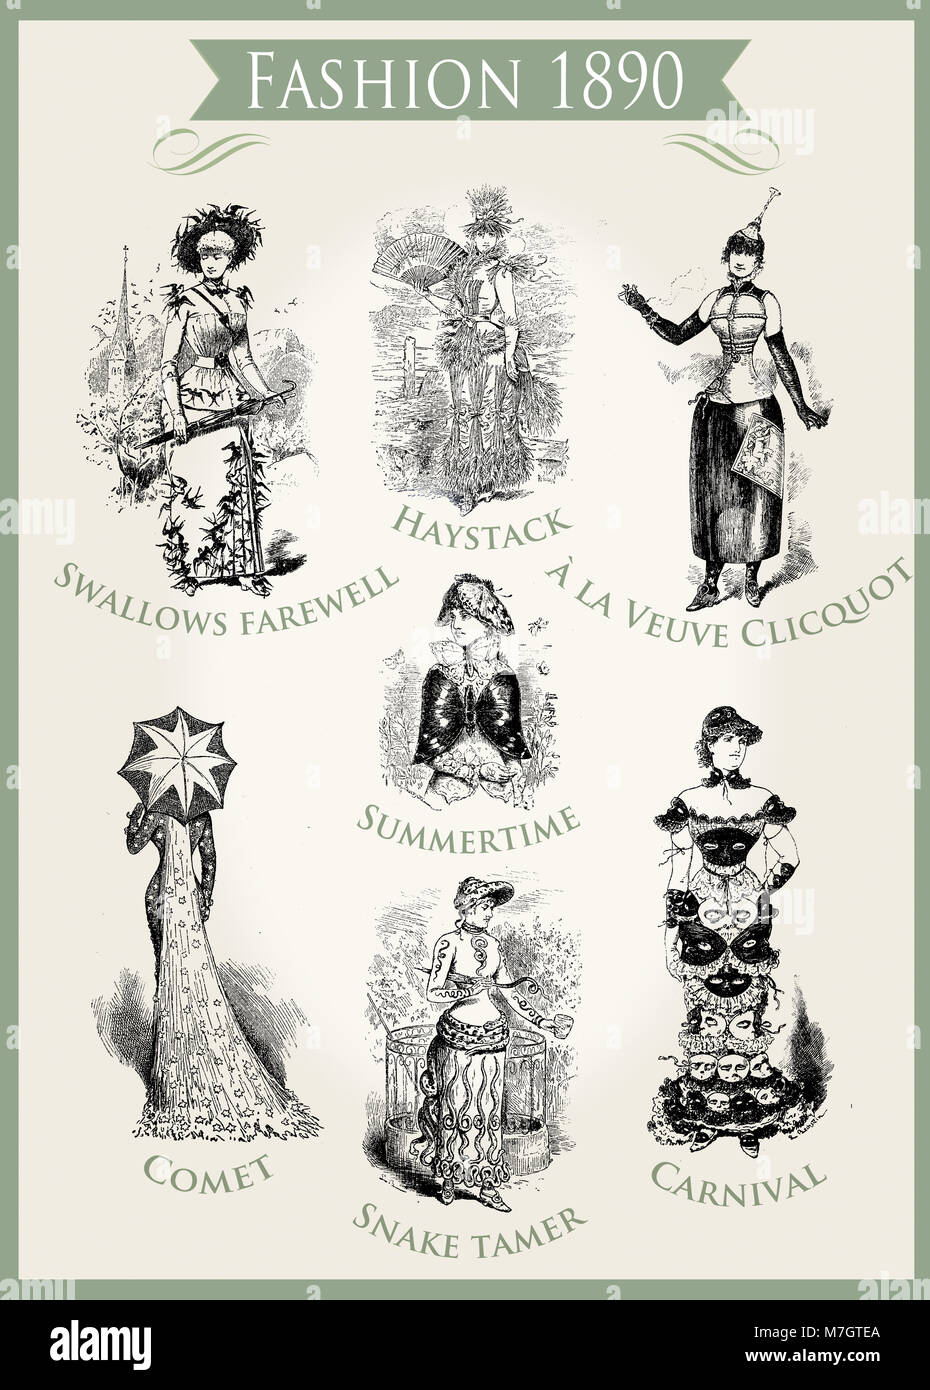 Fashion 1890 caricature and fun: very unpredictable outfits appropriate for a Carnival party - Stock Image